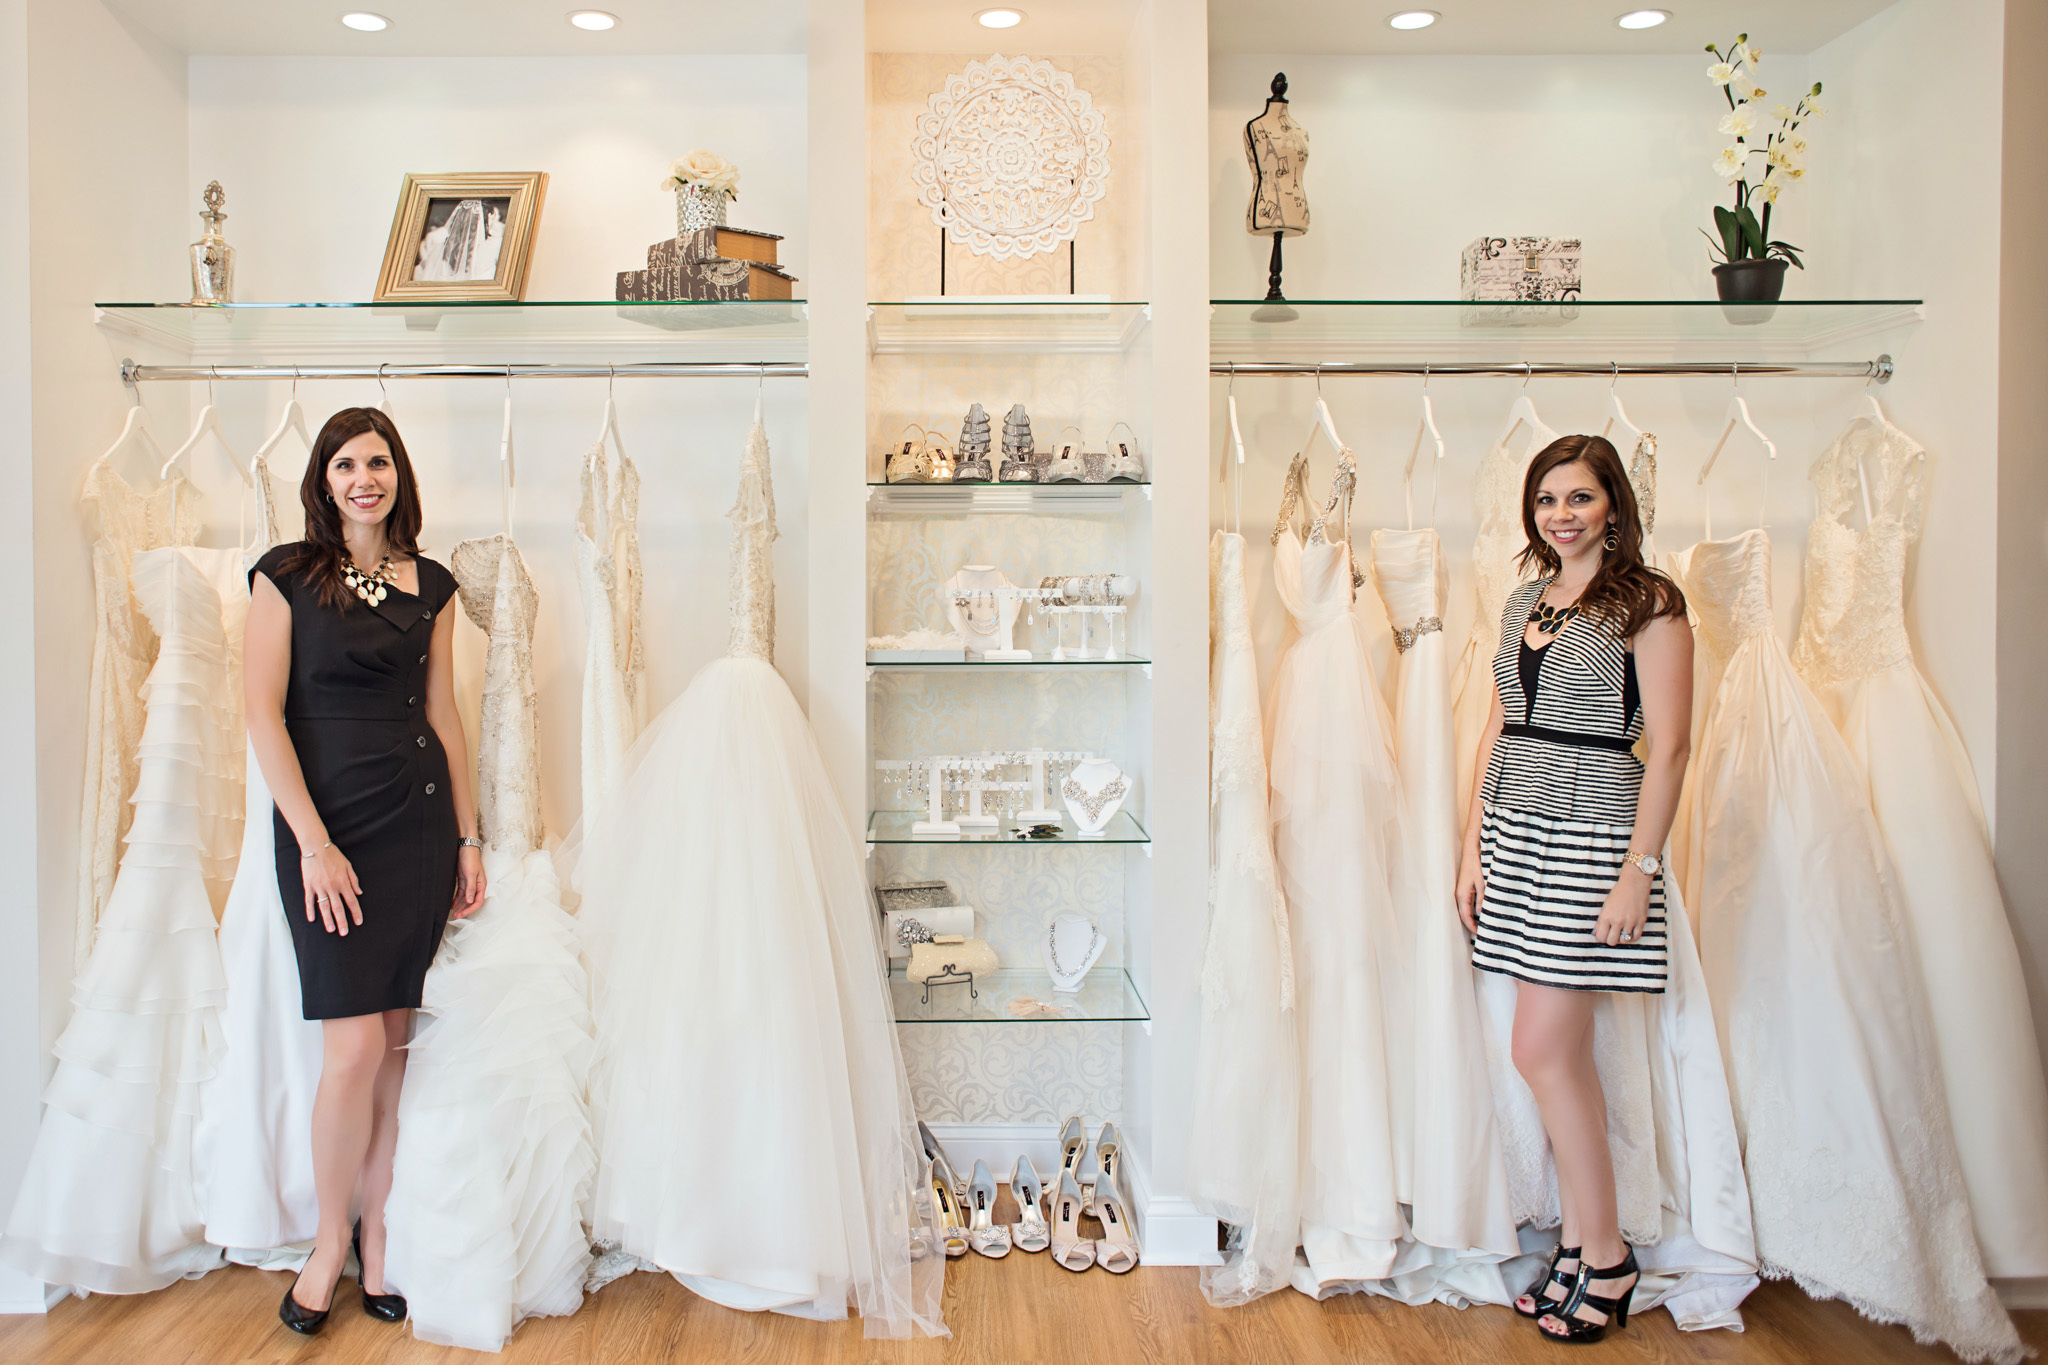 Wedding Dress Stores Chicago : Bridal s in chicago for the perfect wedding dress